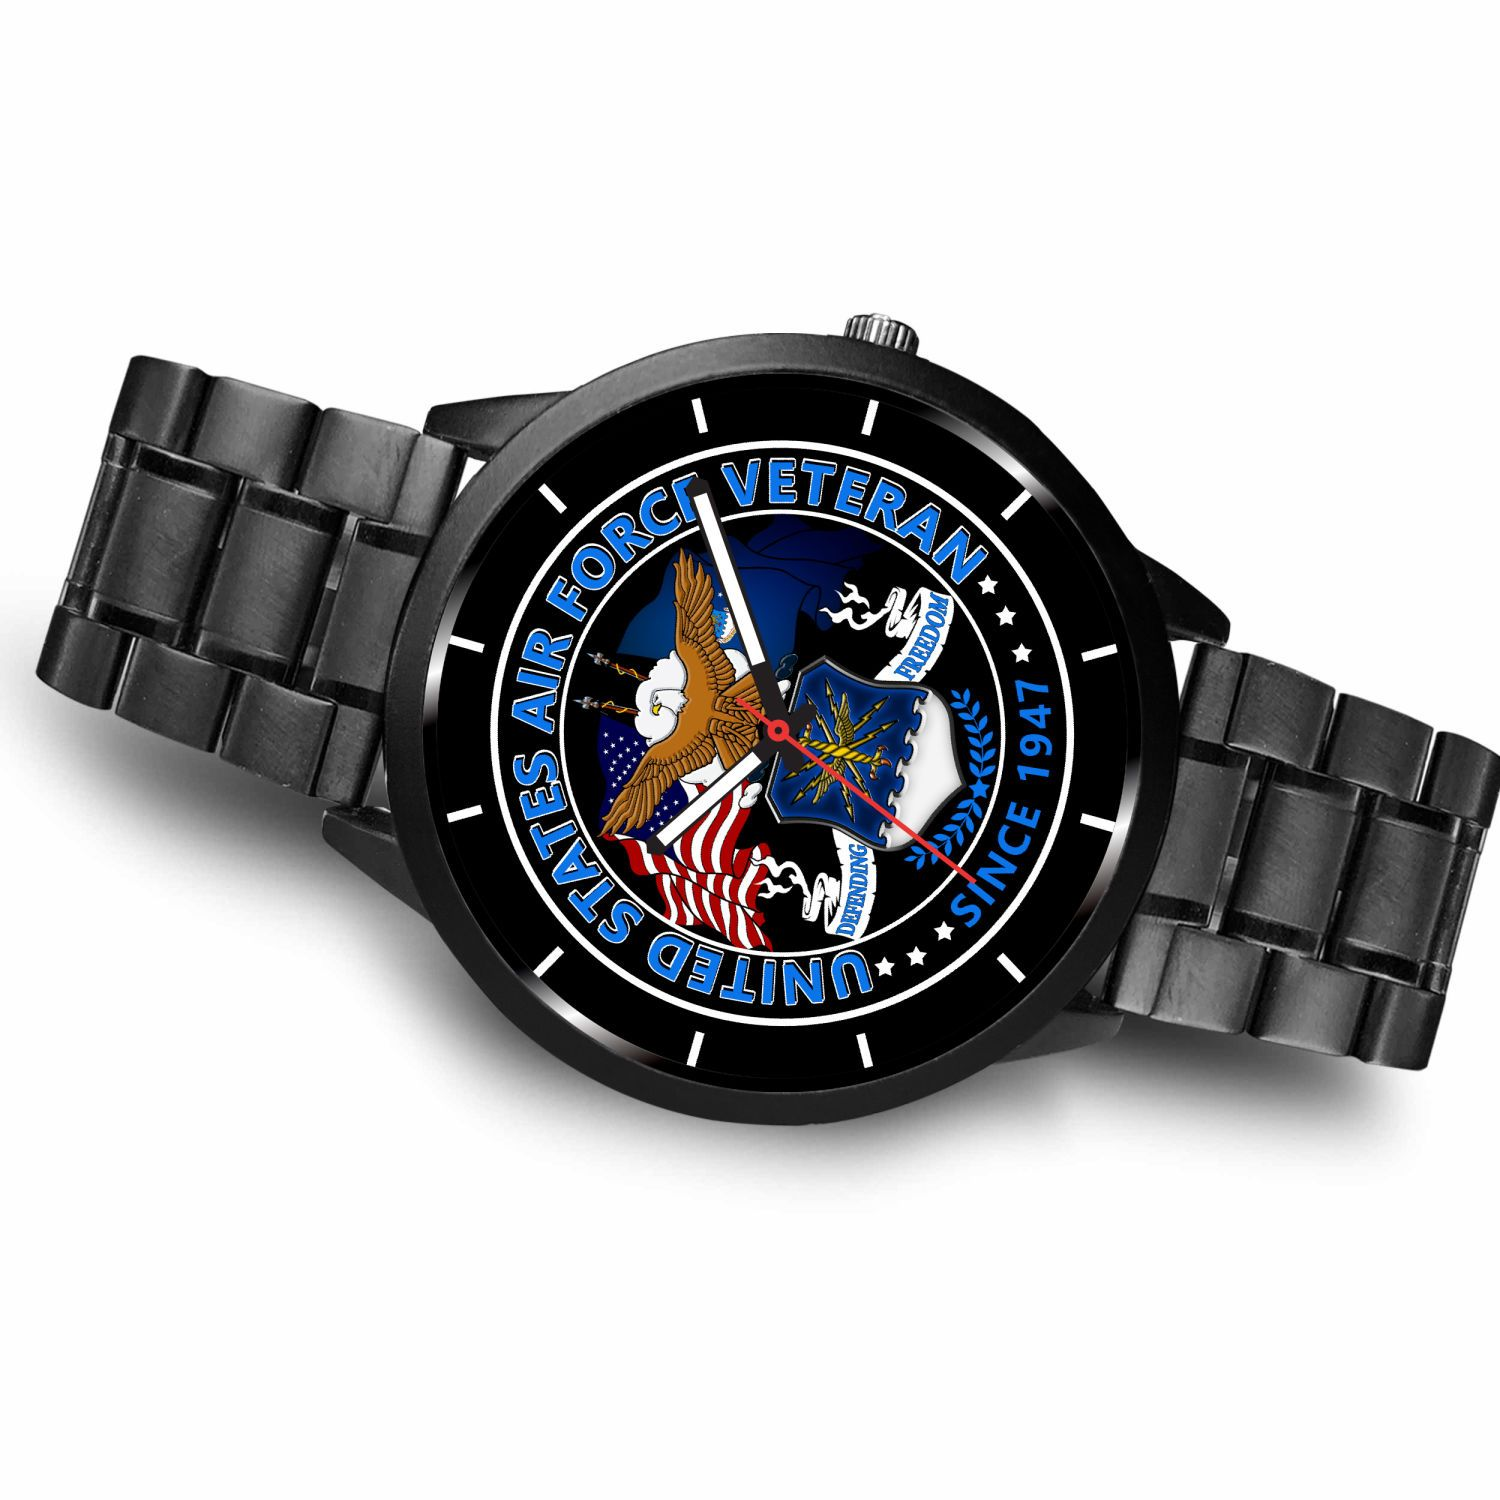 air-force-veteran_22185706-07ee-c915-ff07-472ff9367174 Air force veteran since 1947 WATCH  %tag